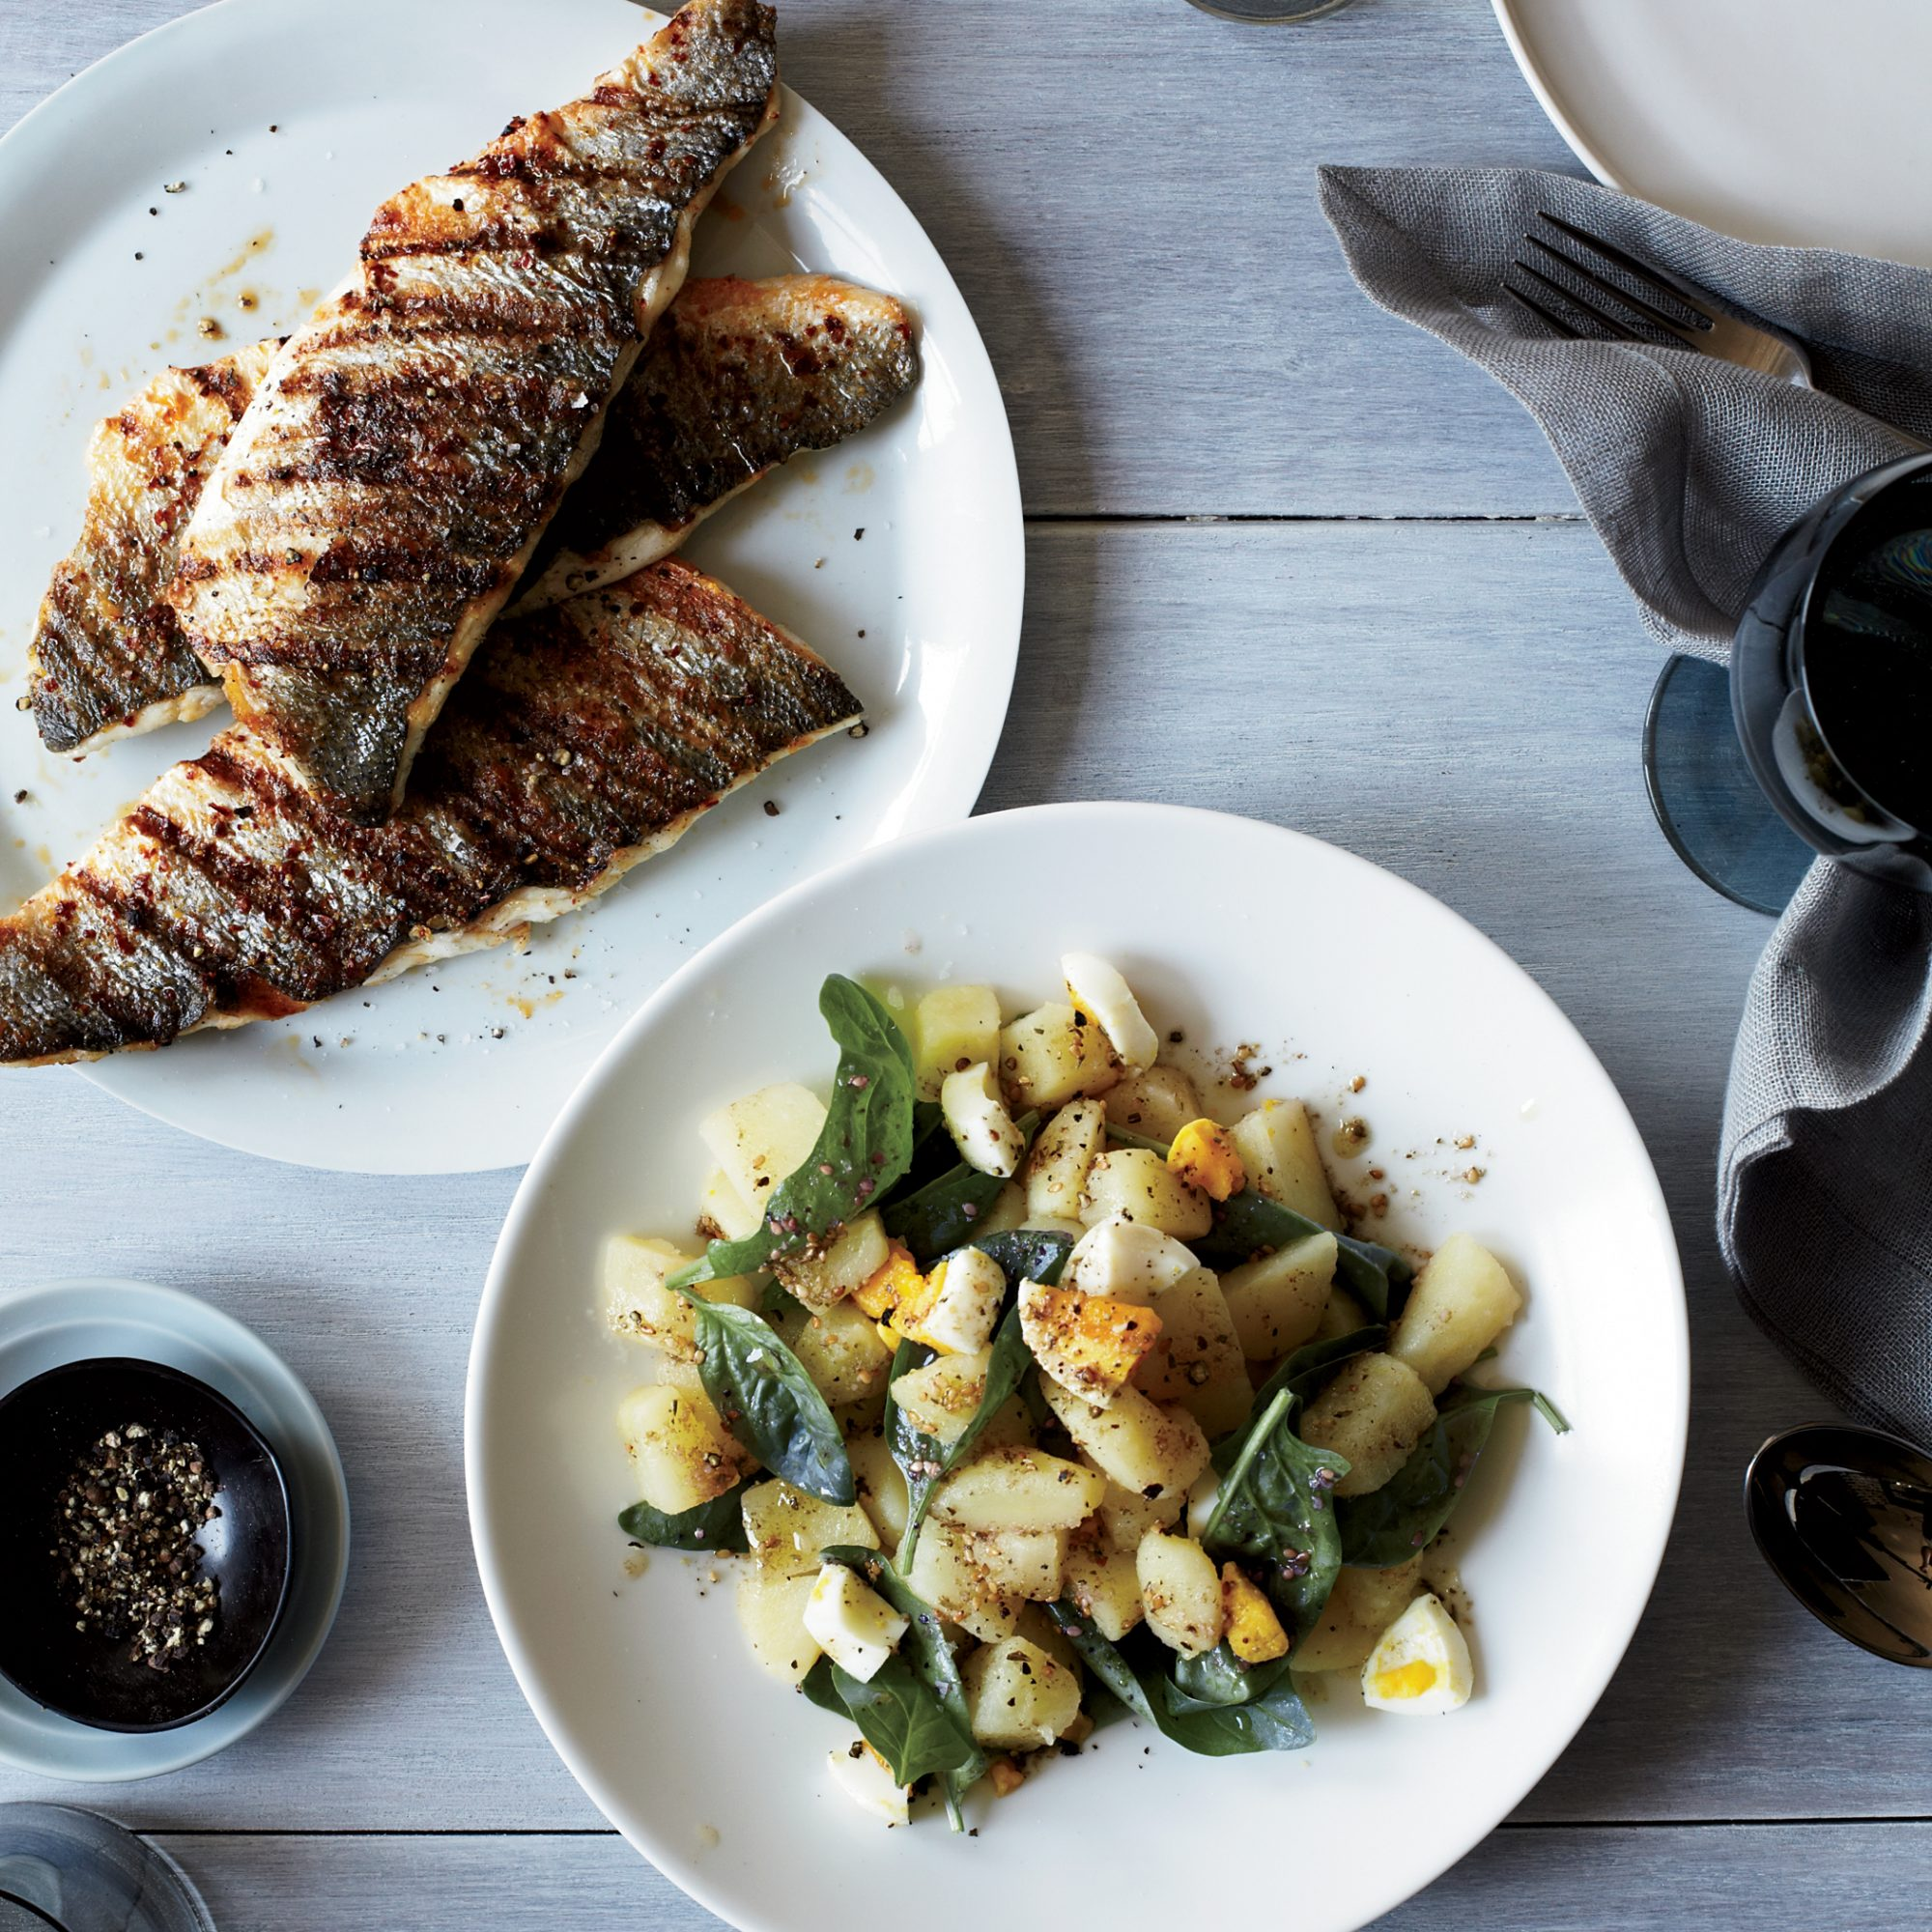 Grilled Branzino Fillets with Potato & Spinach Salad